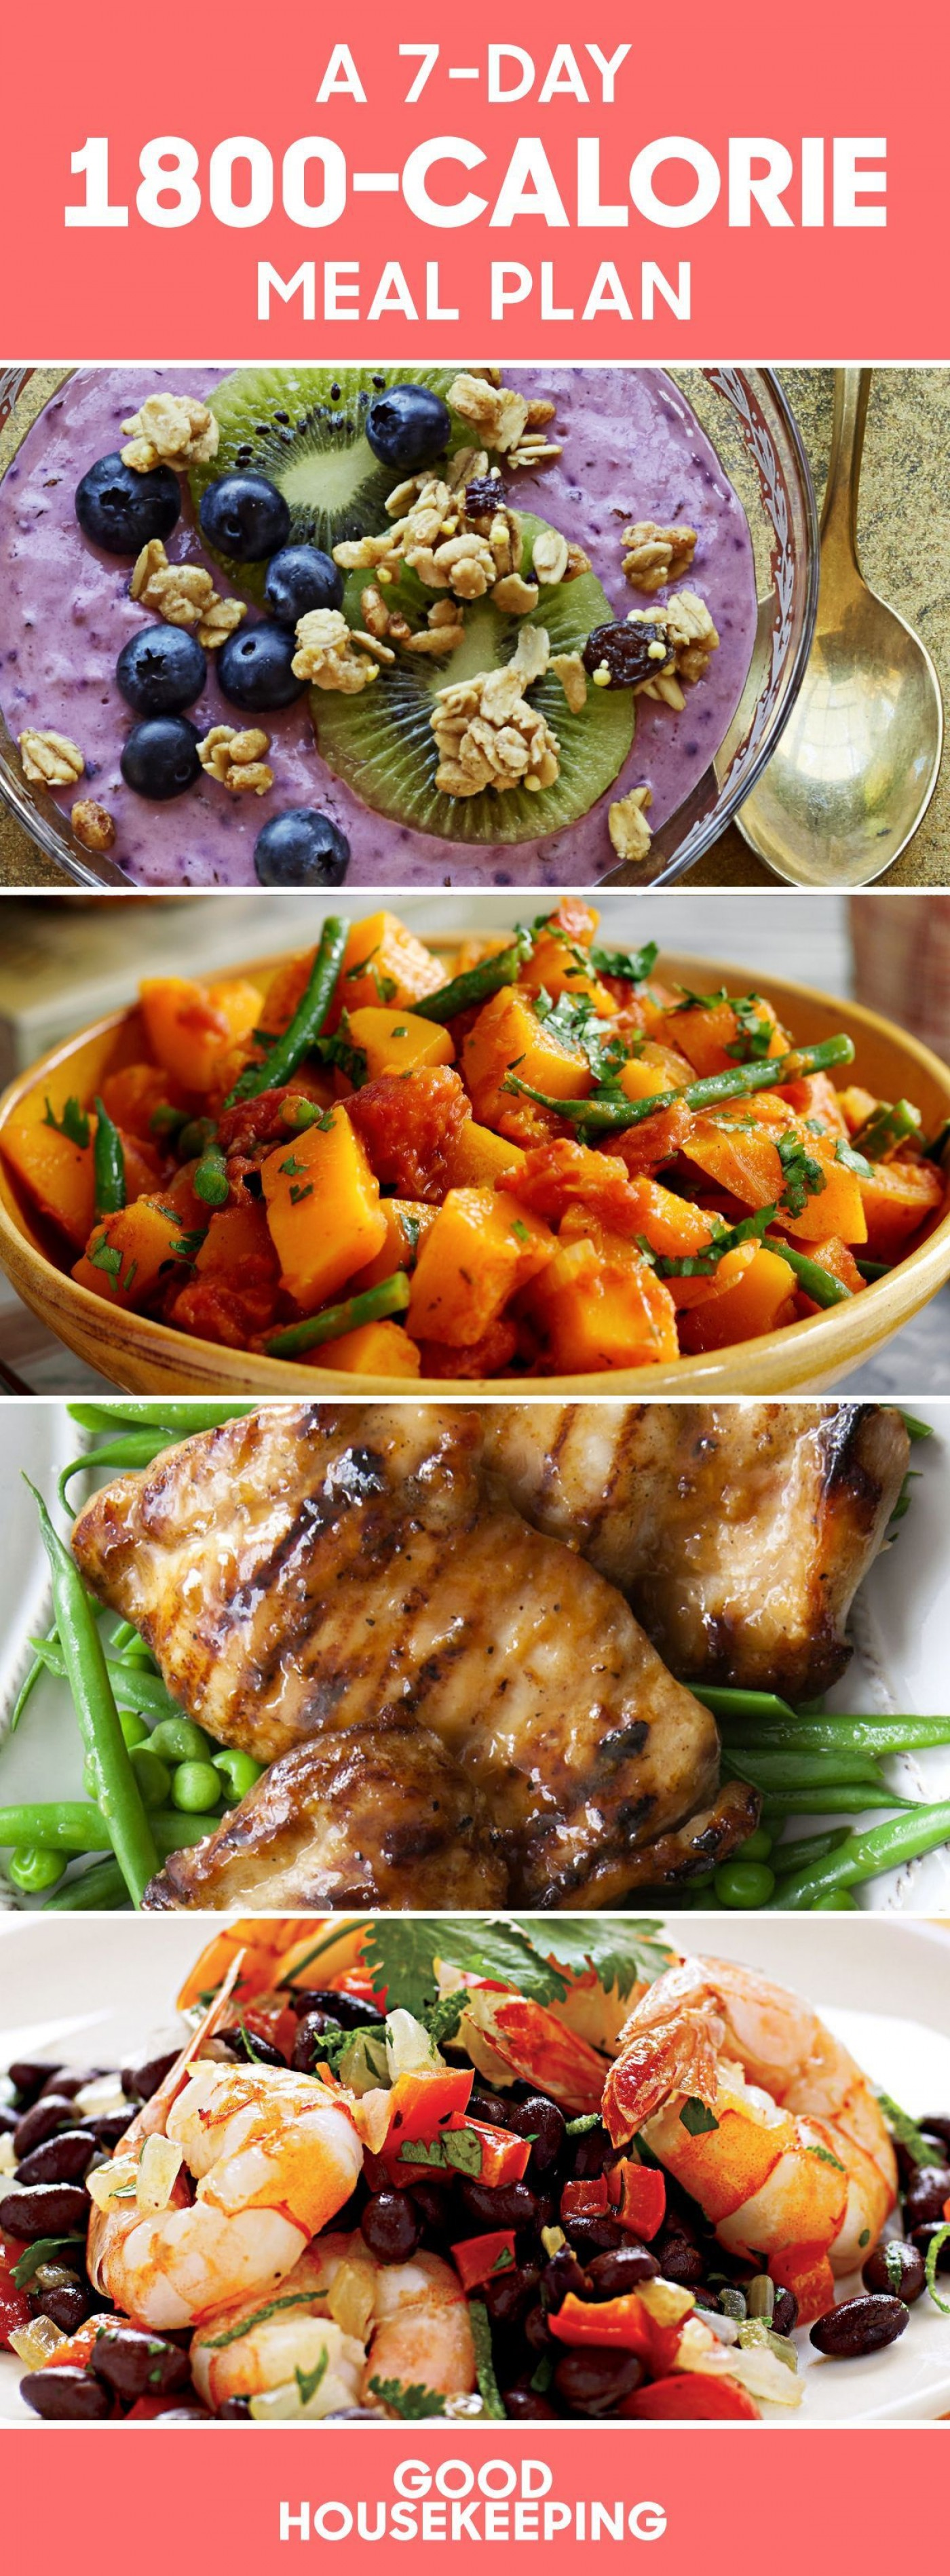 003 Simple Sample 1800 Calorie Meal Plan Pdf Highest Quality 1400